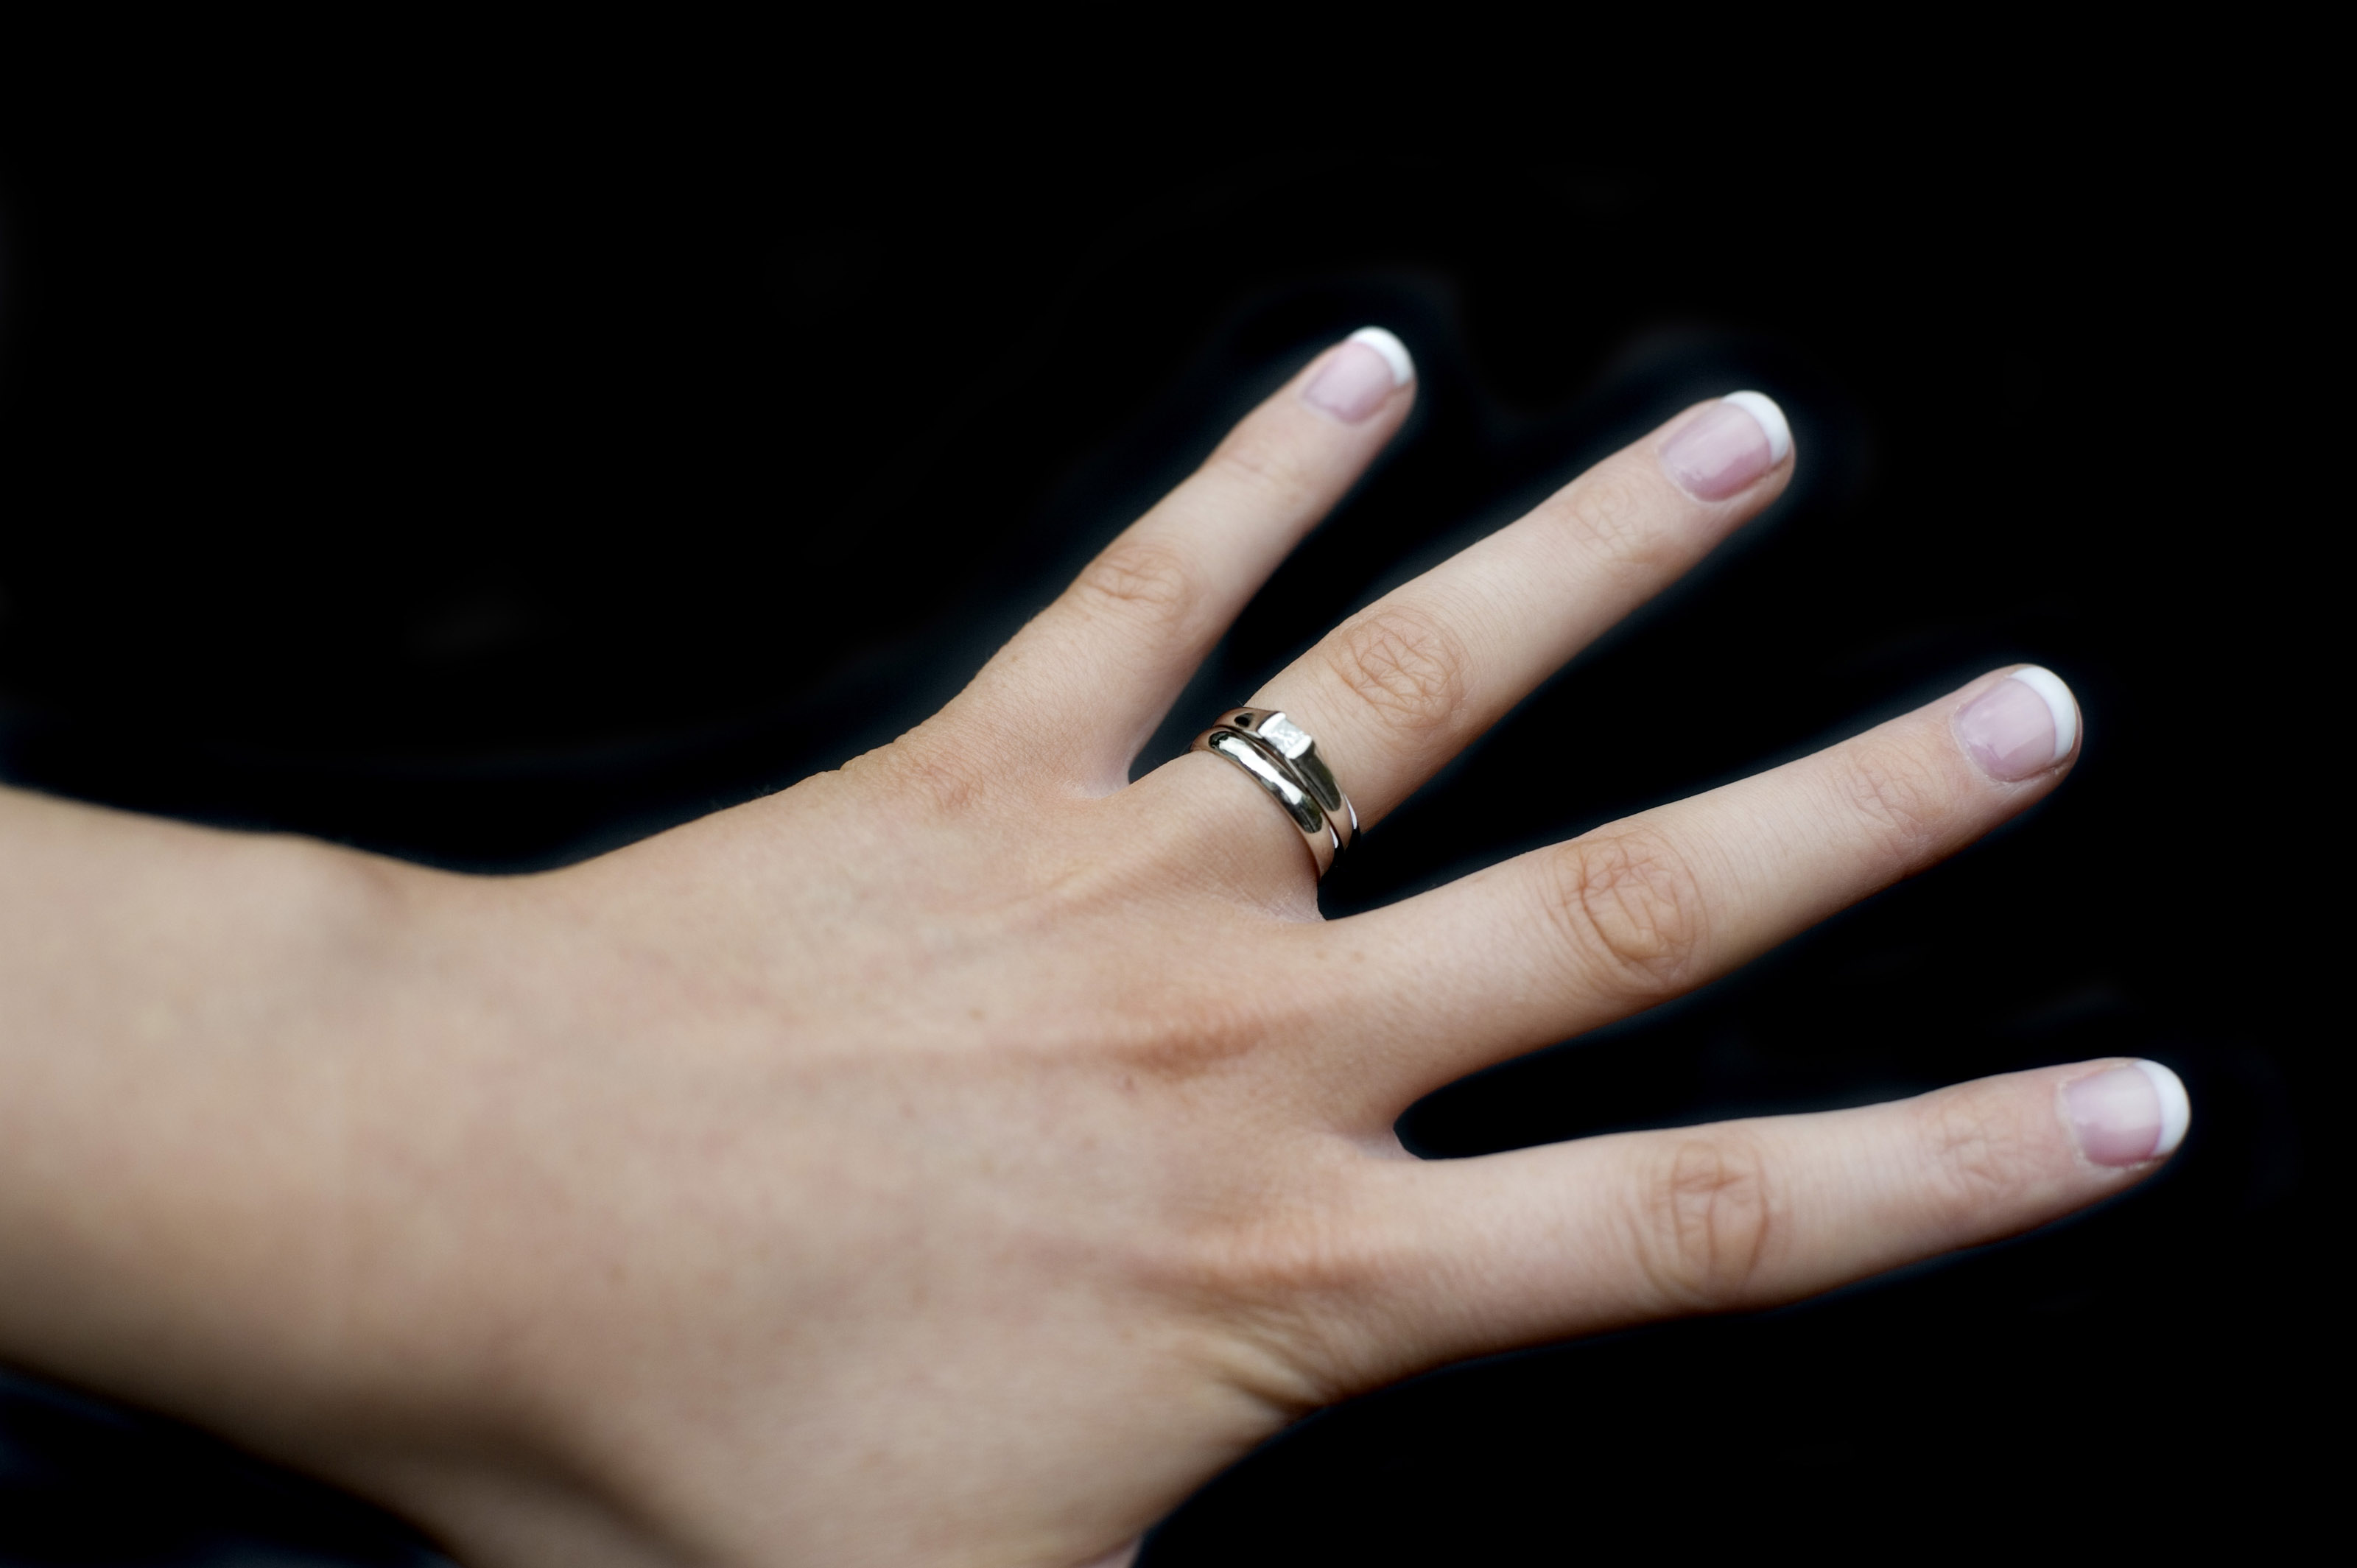 Wearing Engagement Ring On Right Hand After Divorce